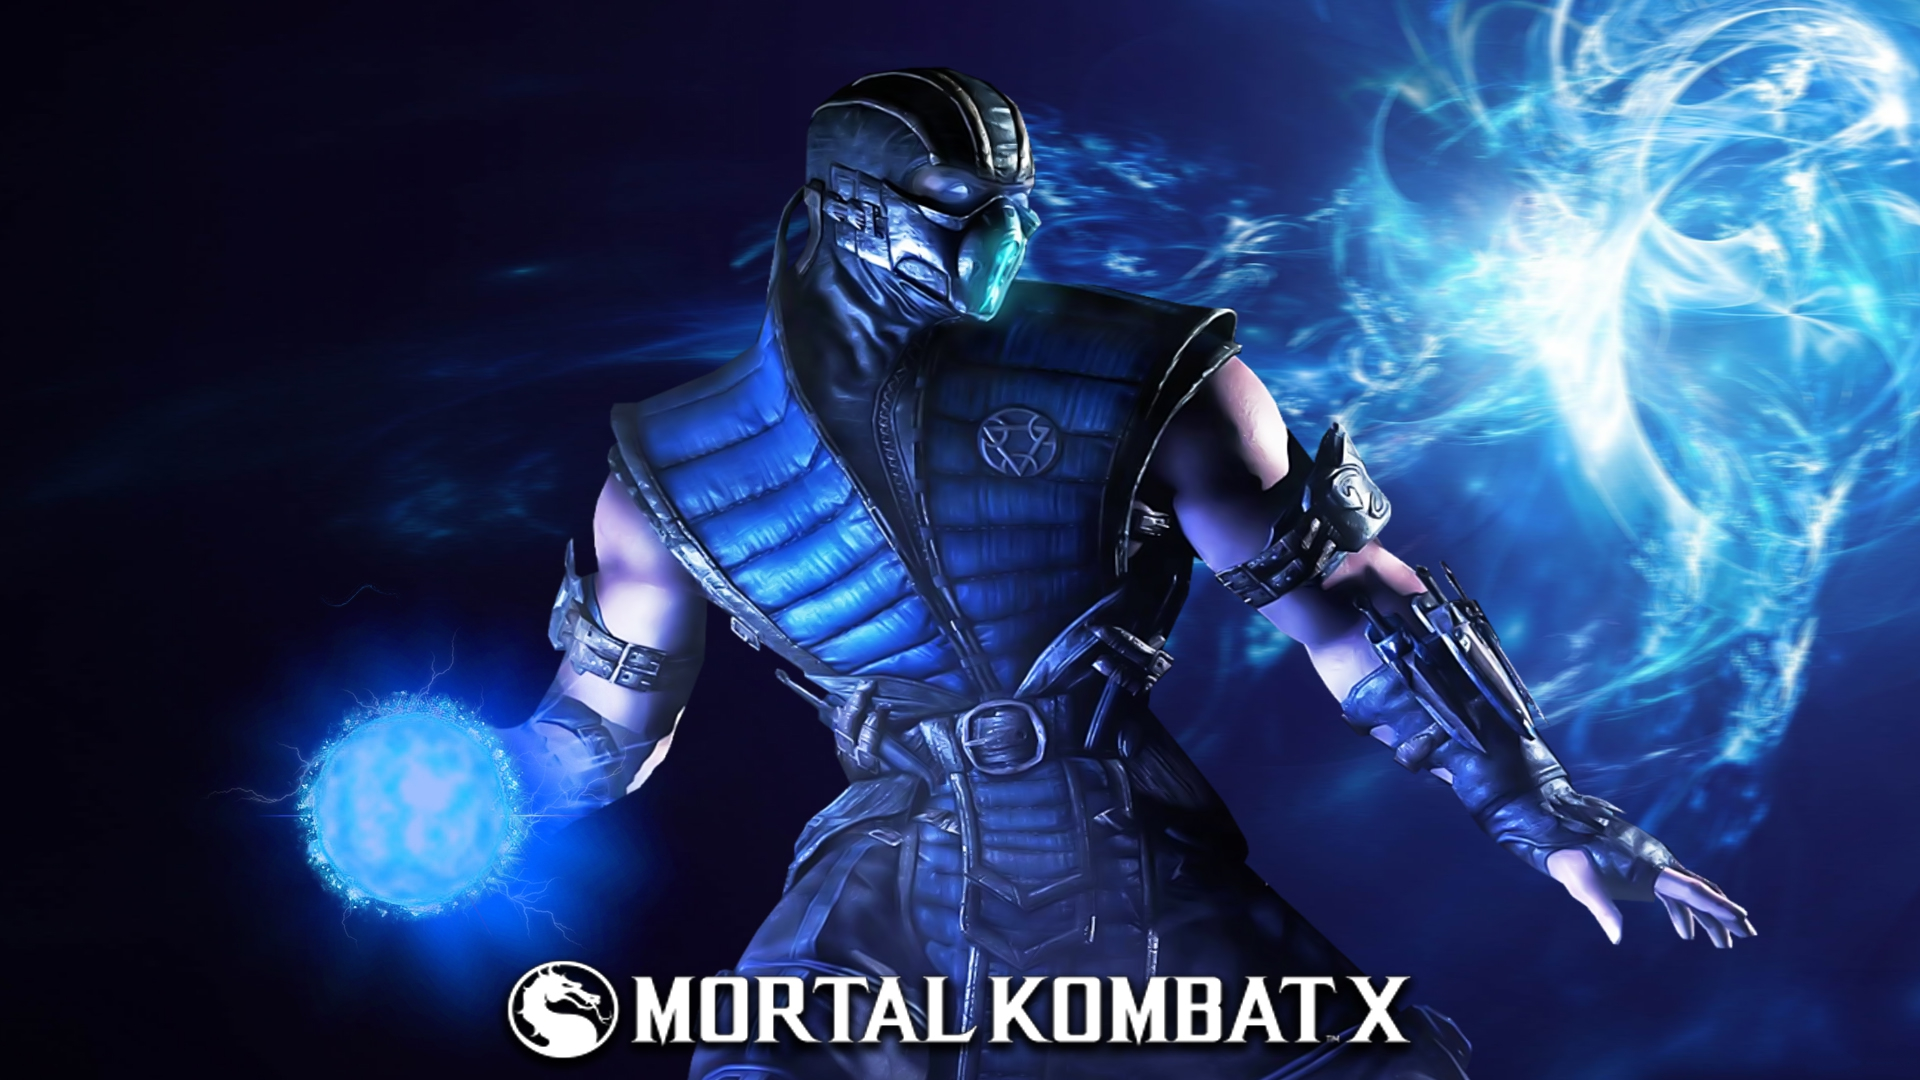 Mortal Kombat HD Wallpapers and Backgrounds 1920x1080